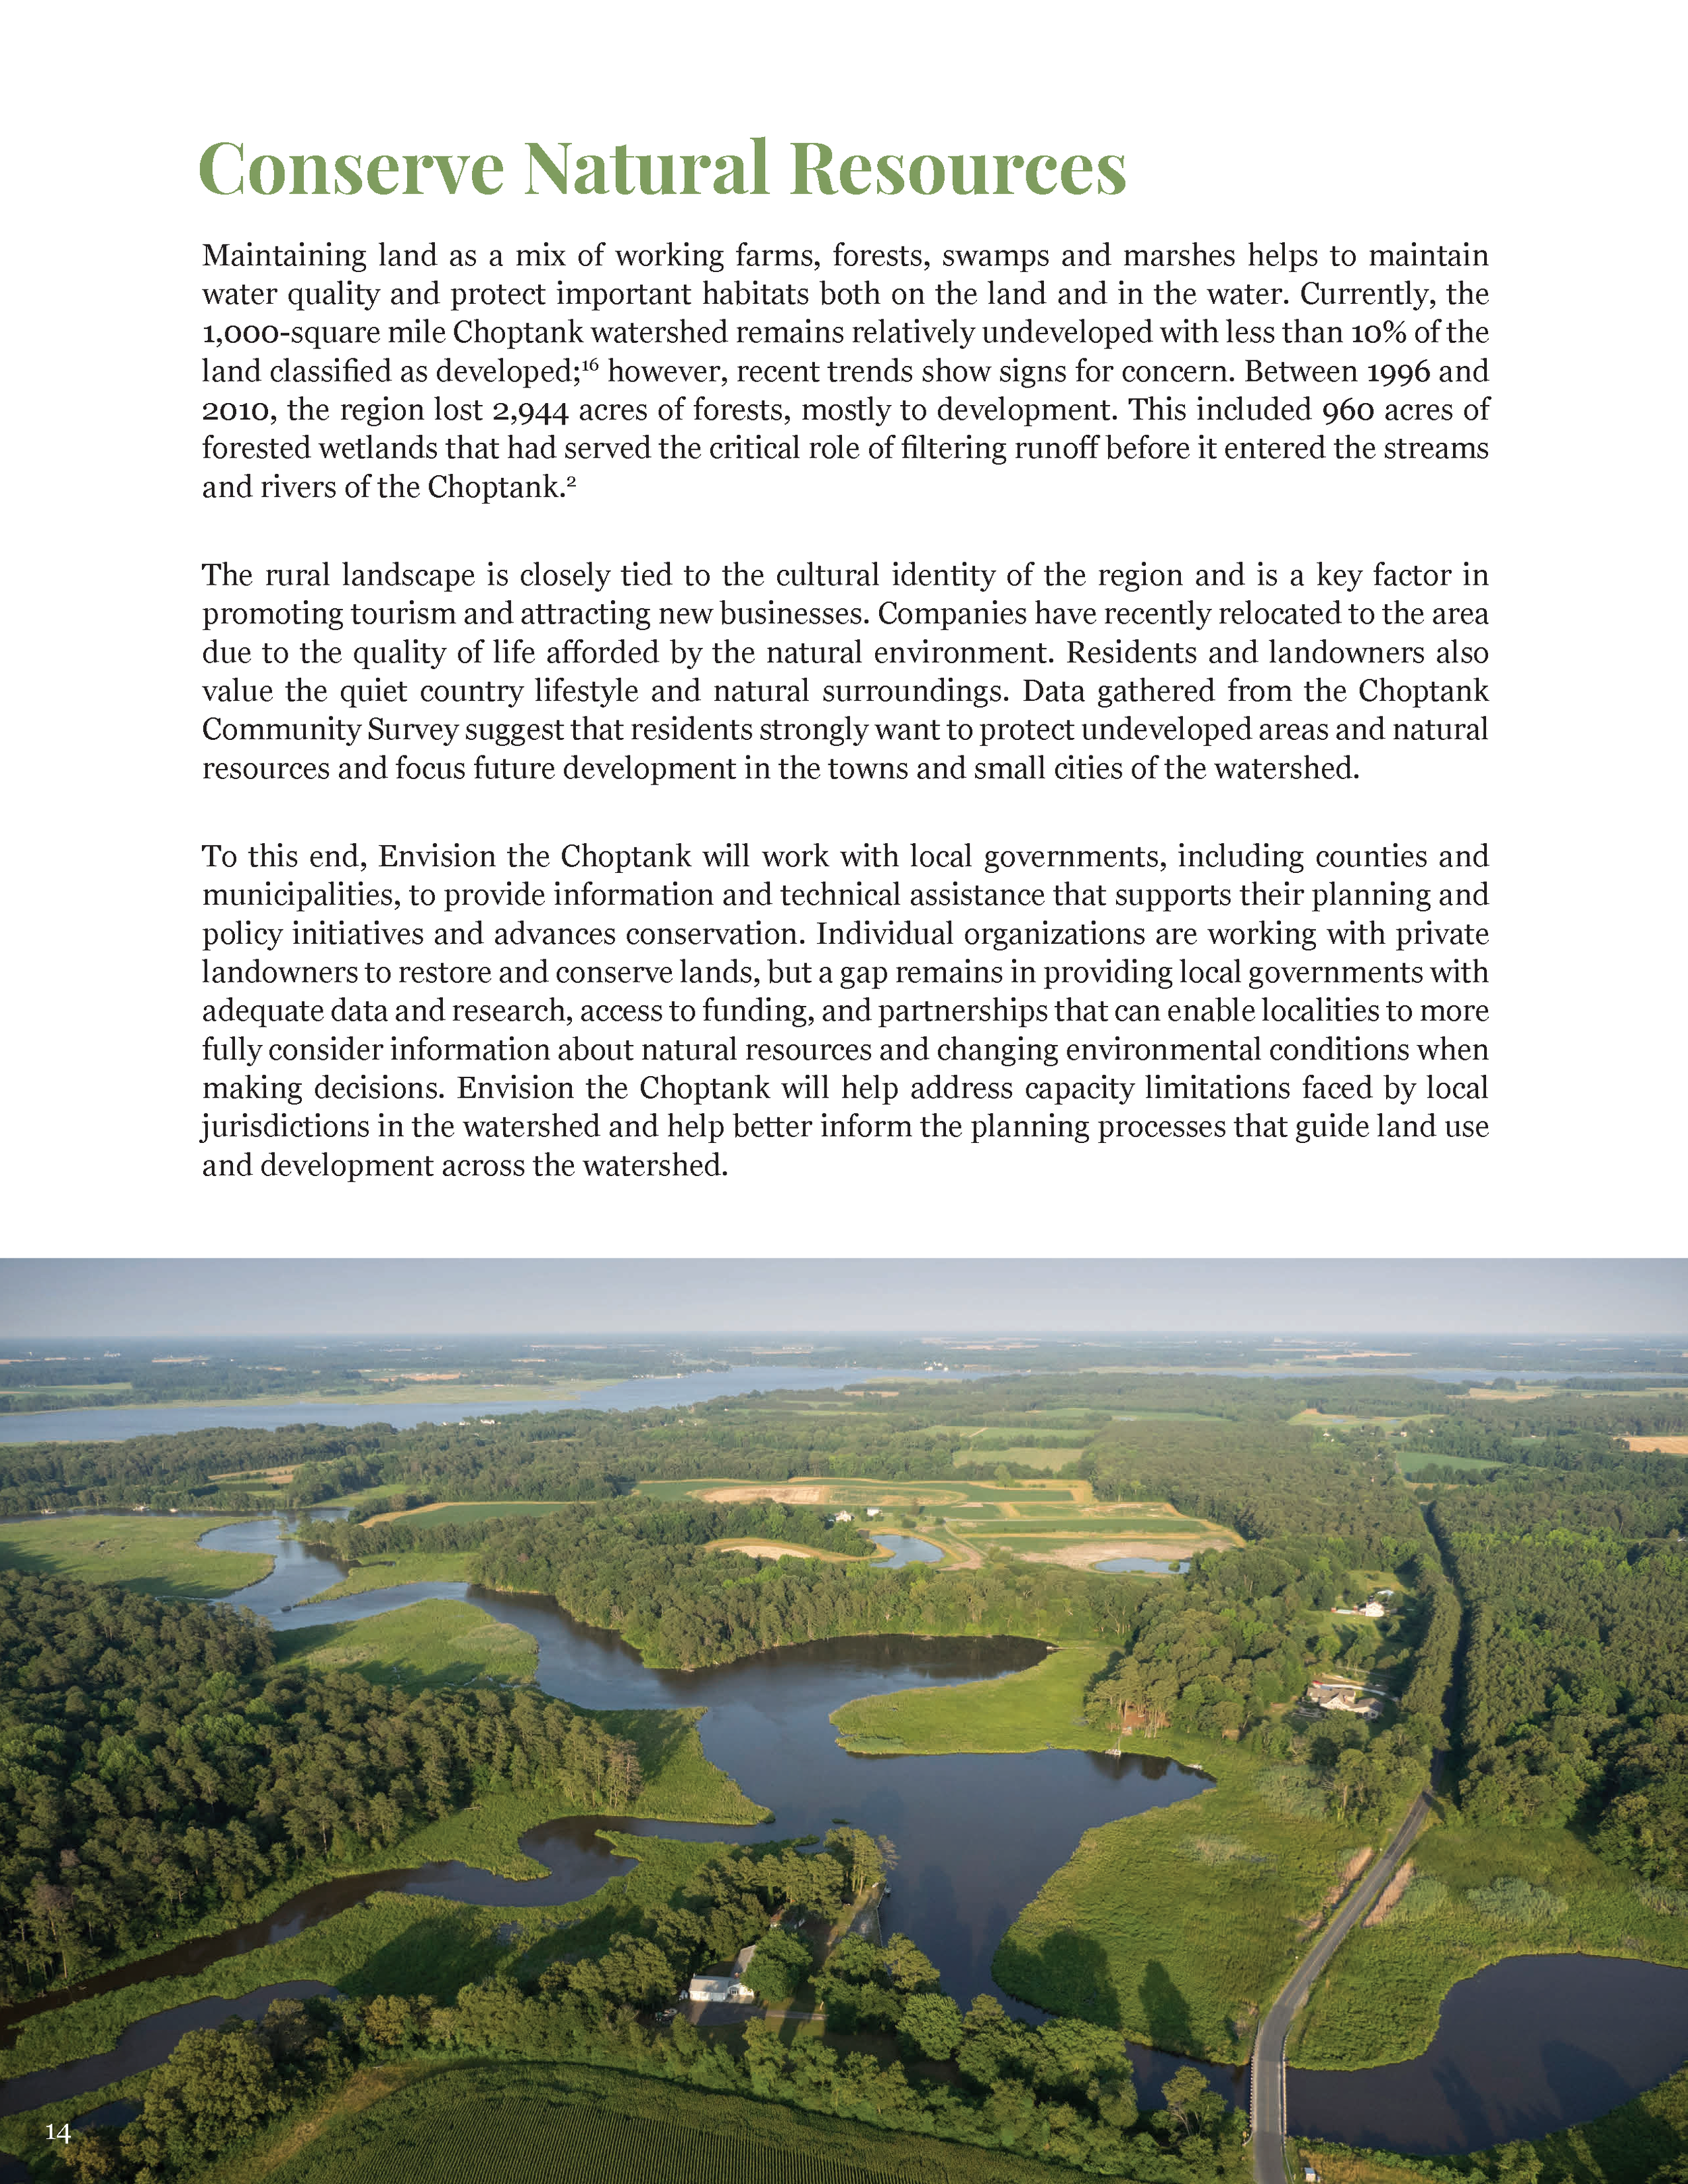 Final Digital Proof from Tray Inc. - J000441 Envision Choptank Newsletter_Page_14.png